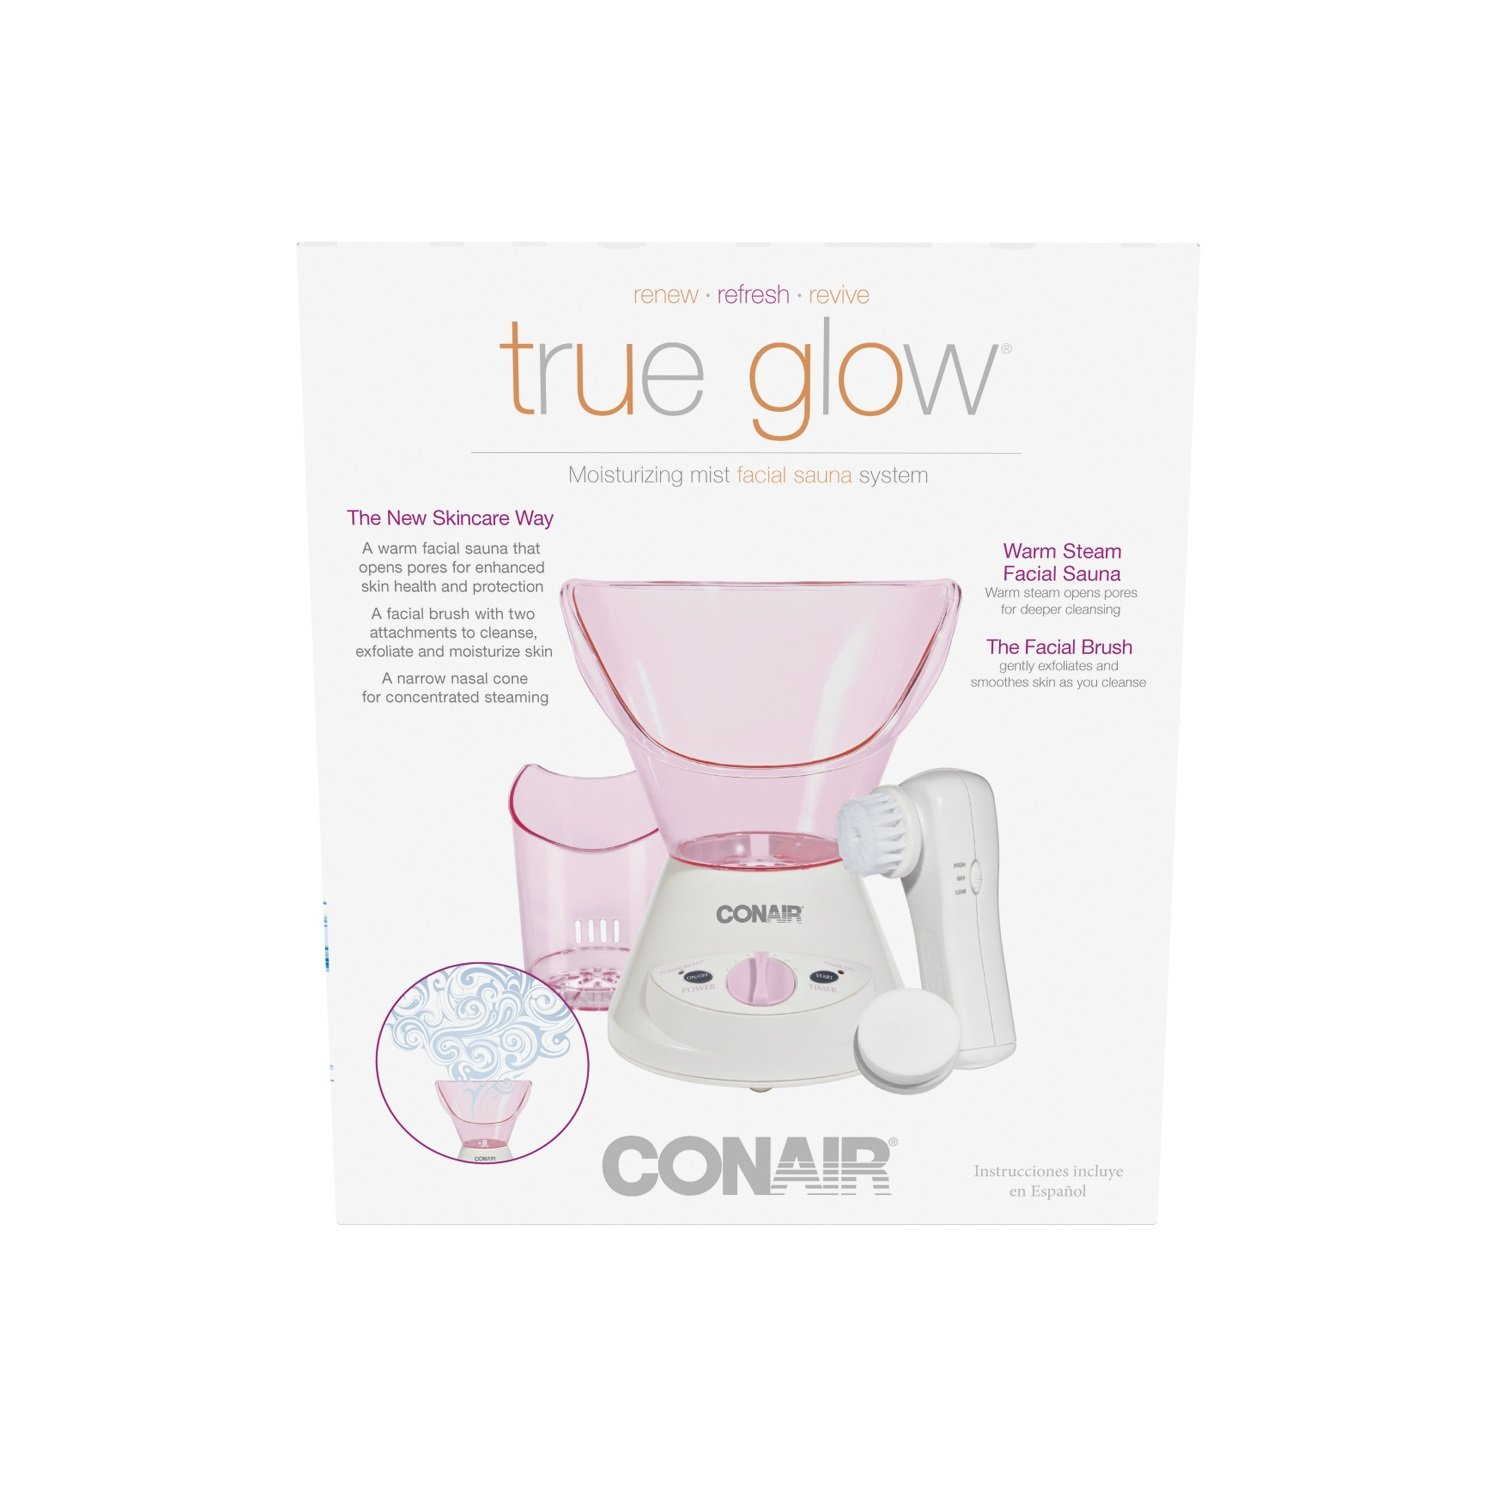 Conair facial sauna system review